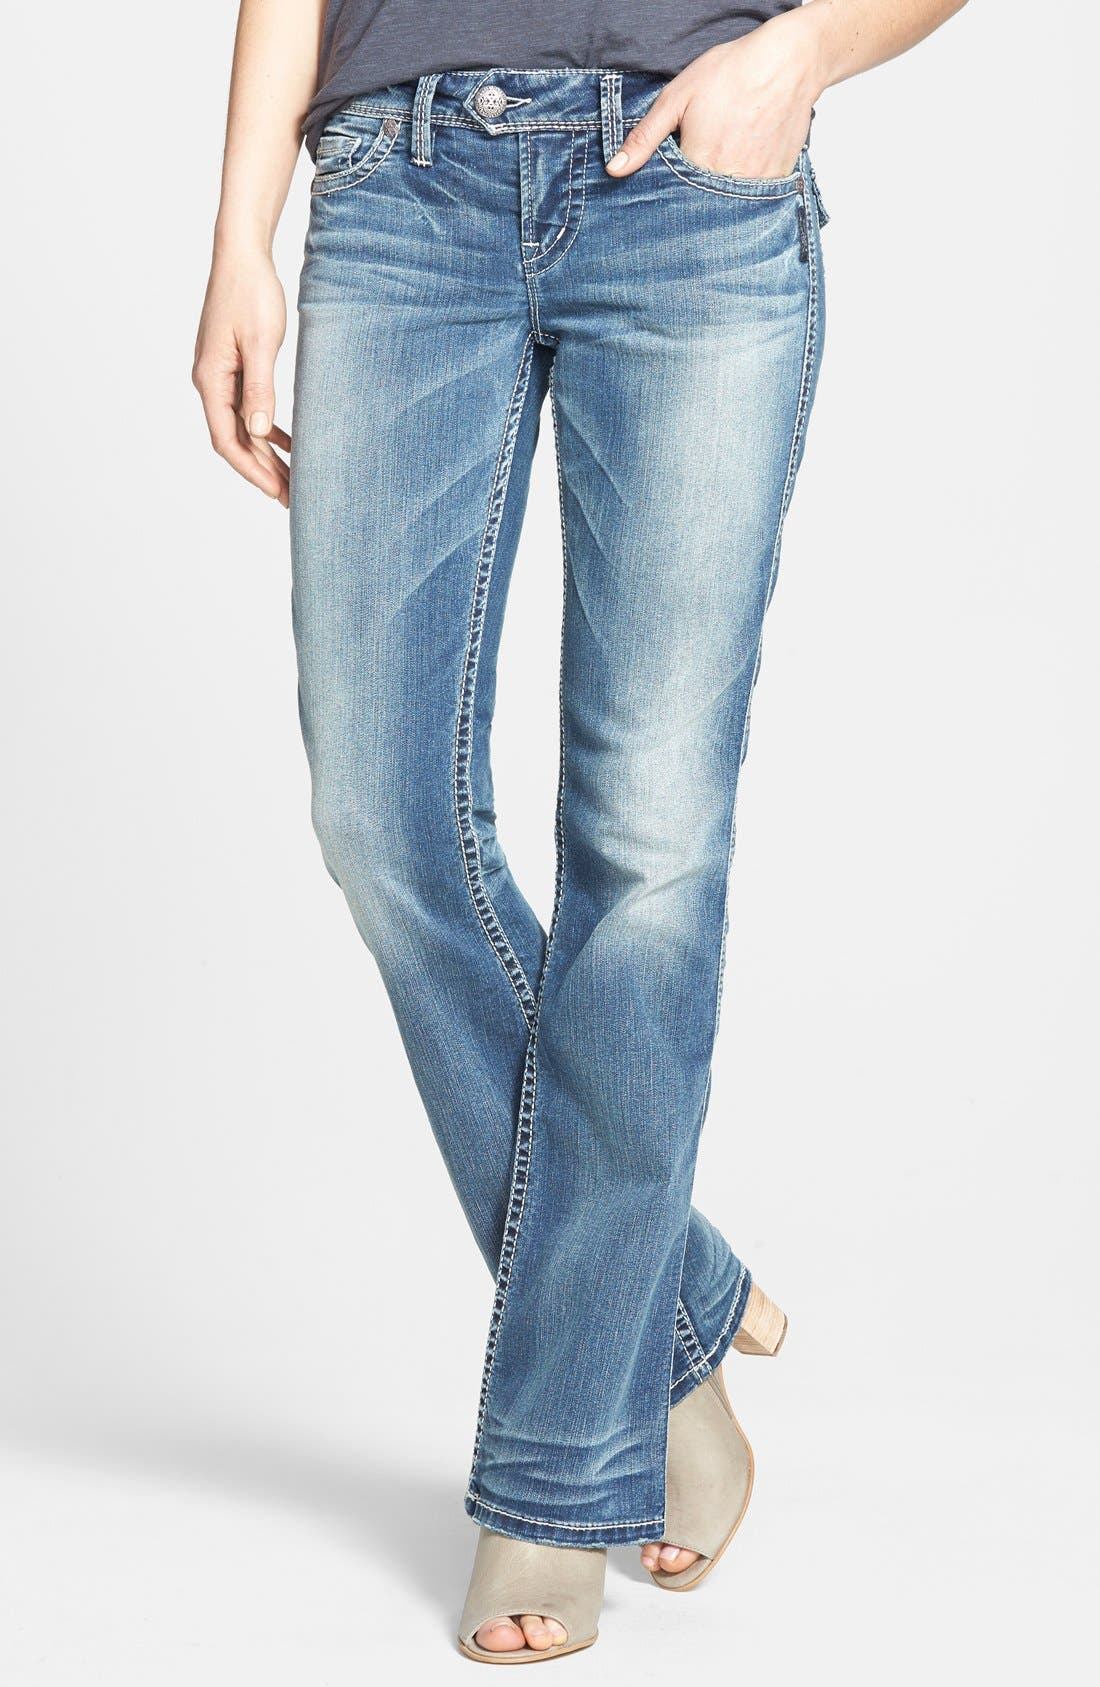 Main Image - Silver Jeans Co. 'Tuesday'  Flap Pocket Bootcut Jeans (Indigo)